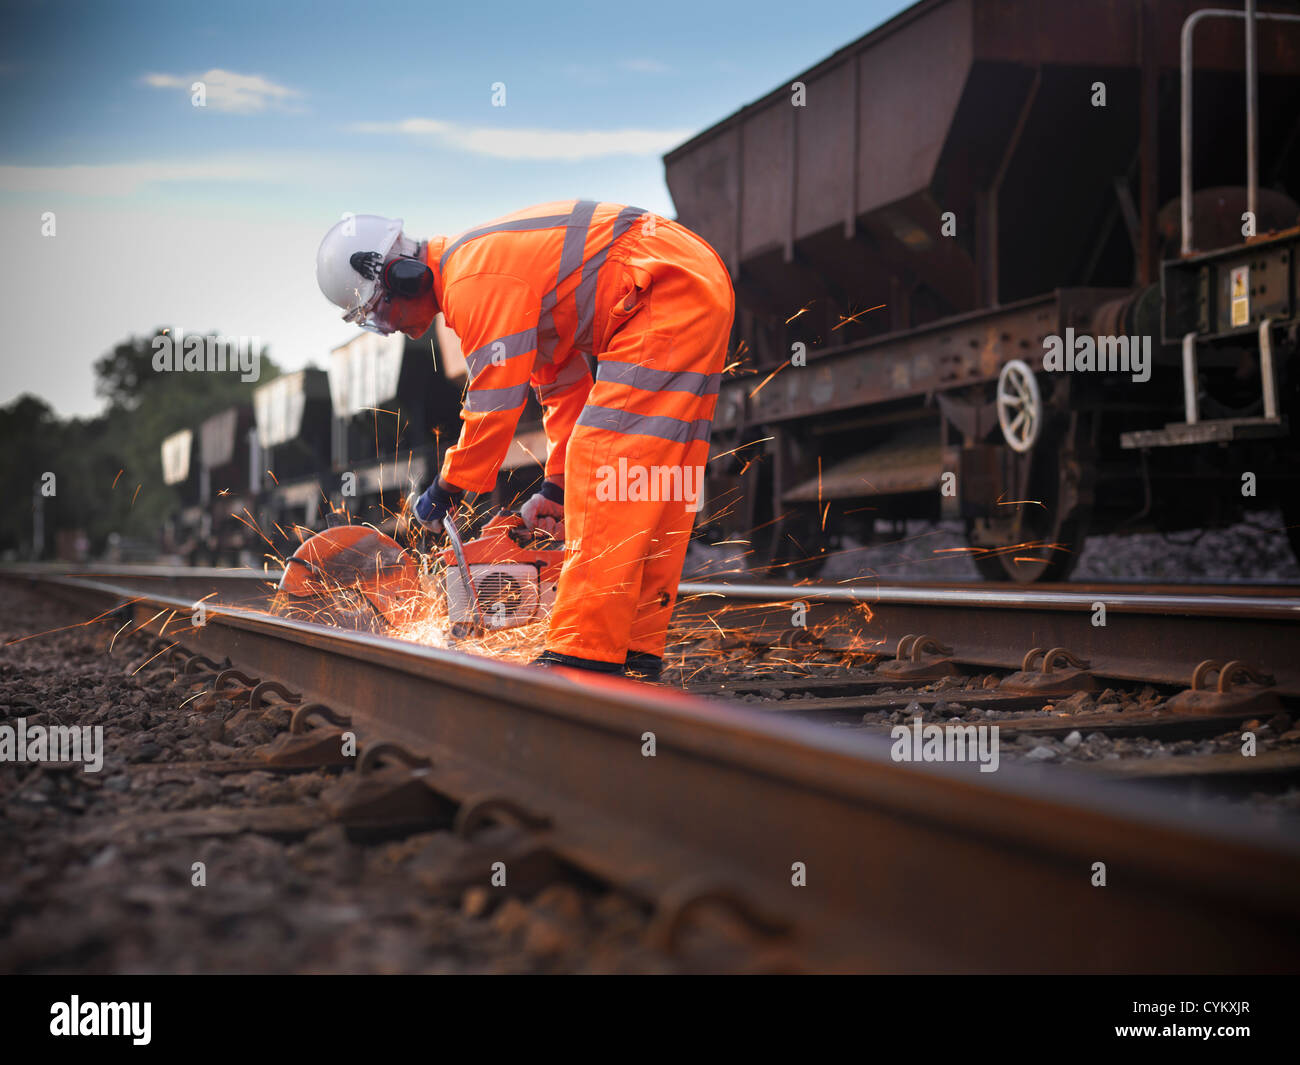 Railway worker adjusting train tracks - Stock Image